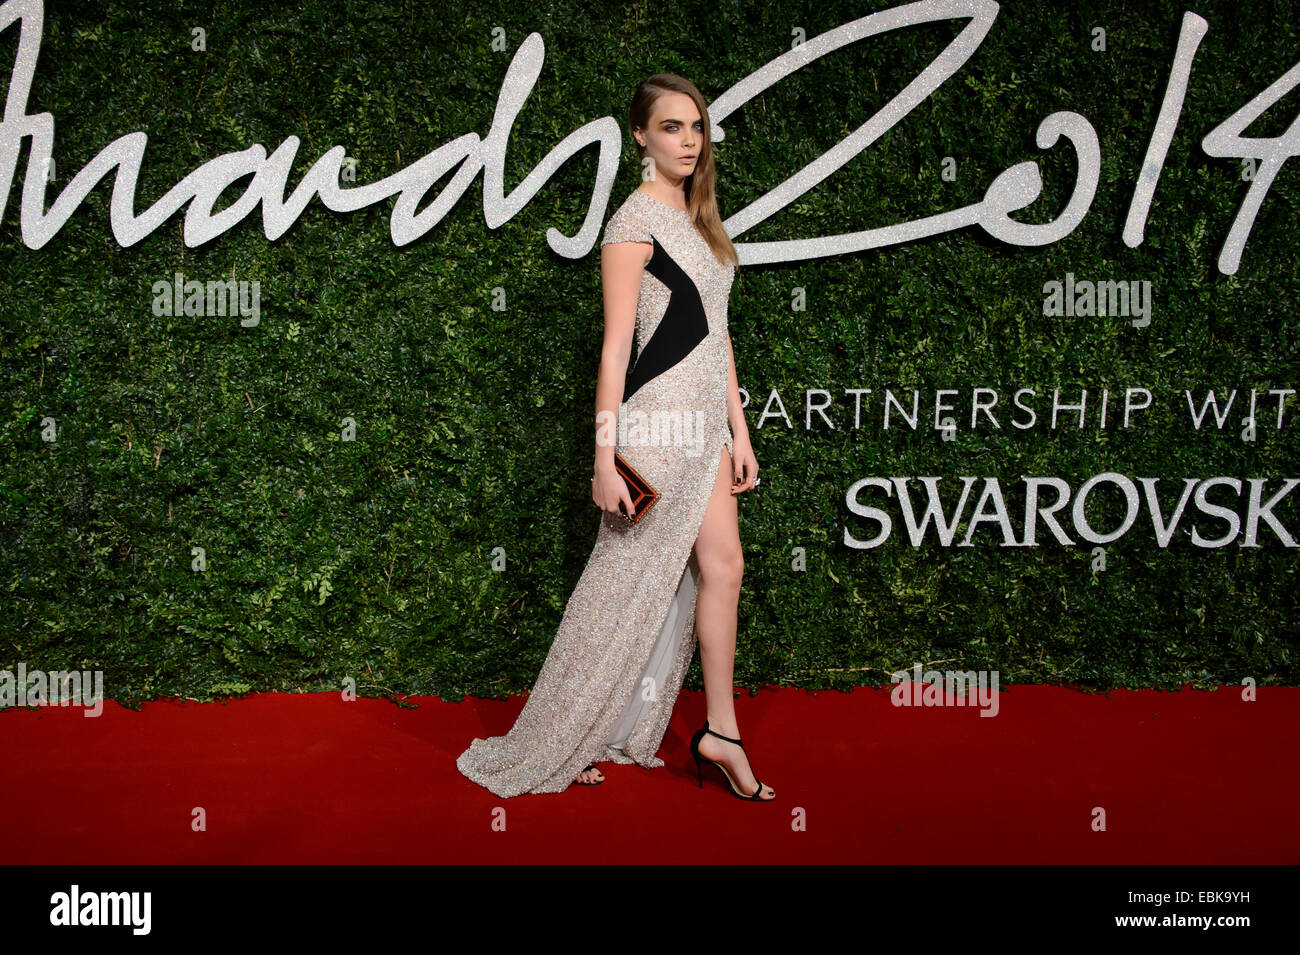 Cara Delevingne en el British Fashion Awards de 2014, en Londres. Imagen De Stock